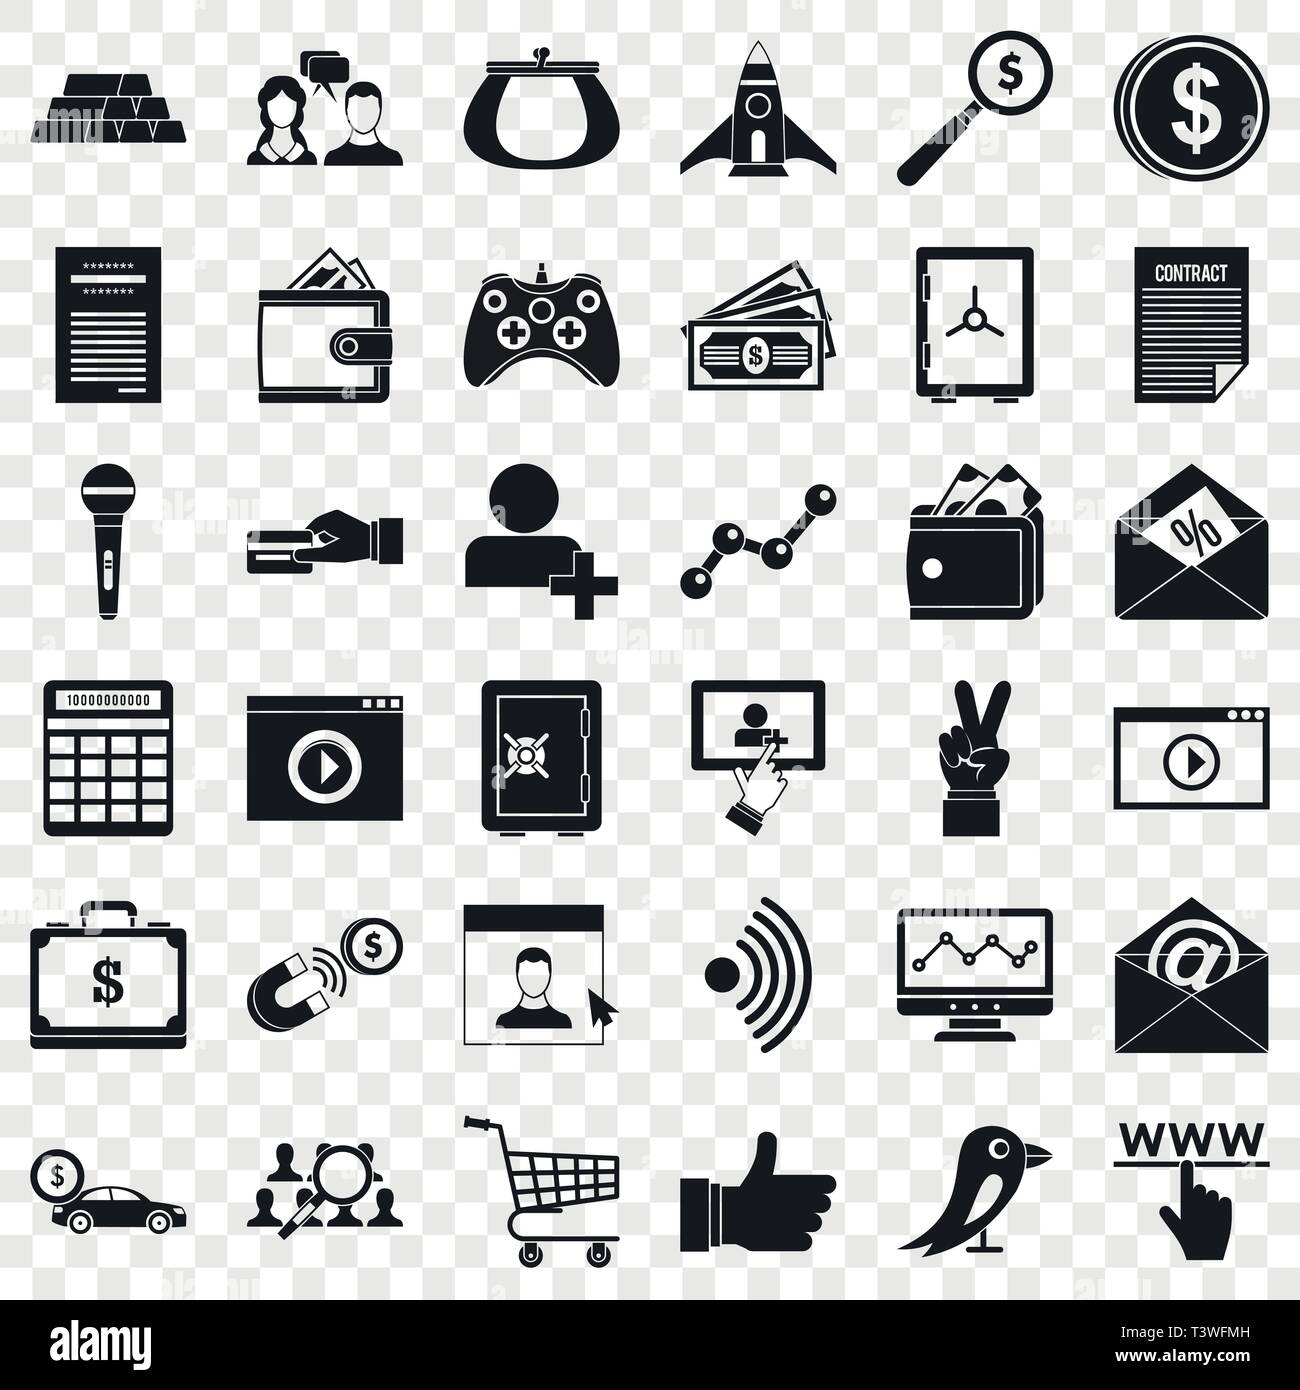 digital marketing icons set simple style stock vector image art alamy https www alamy com digital marketing icons set simple style image243350257 html